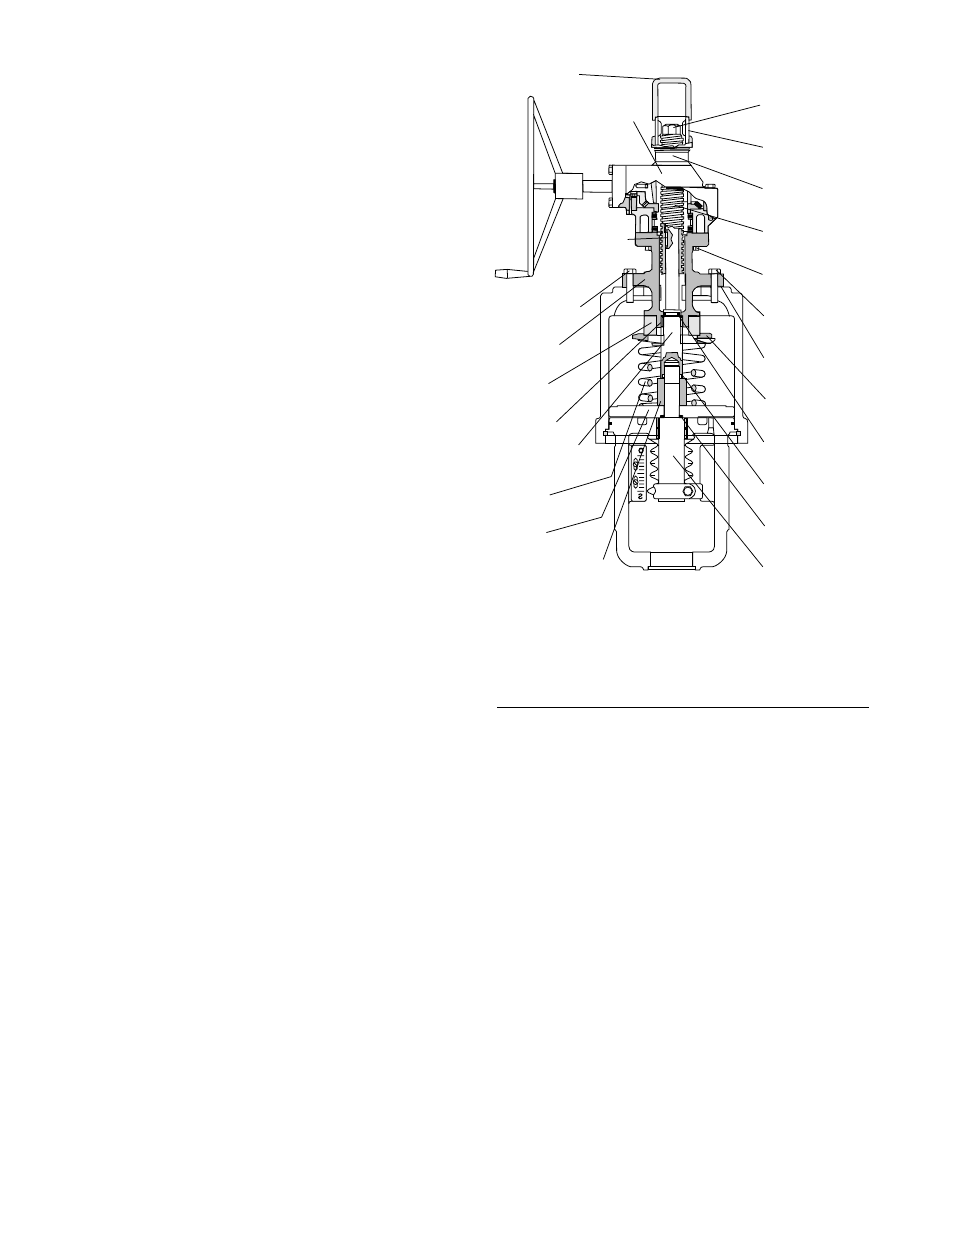 Maintenance Disassembly Flowserve Handwheels And Limit Stop User Manual Page 6 12